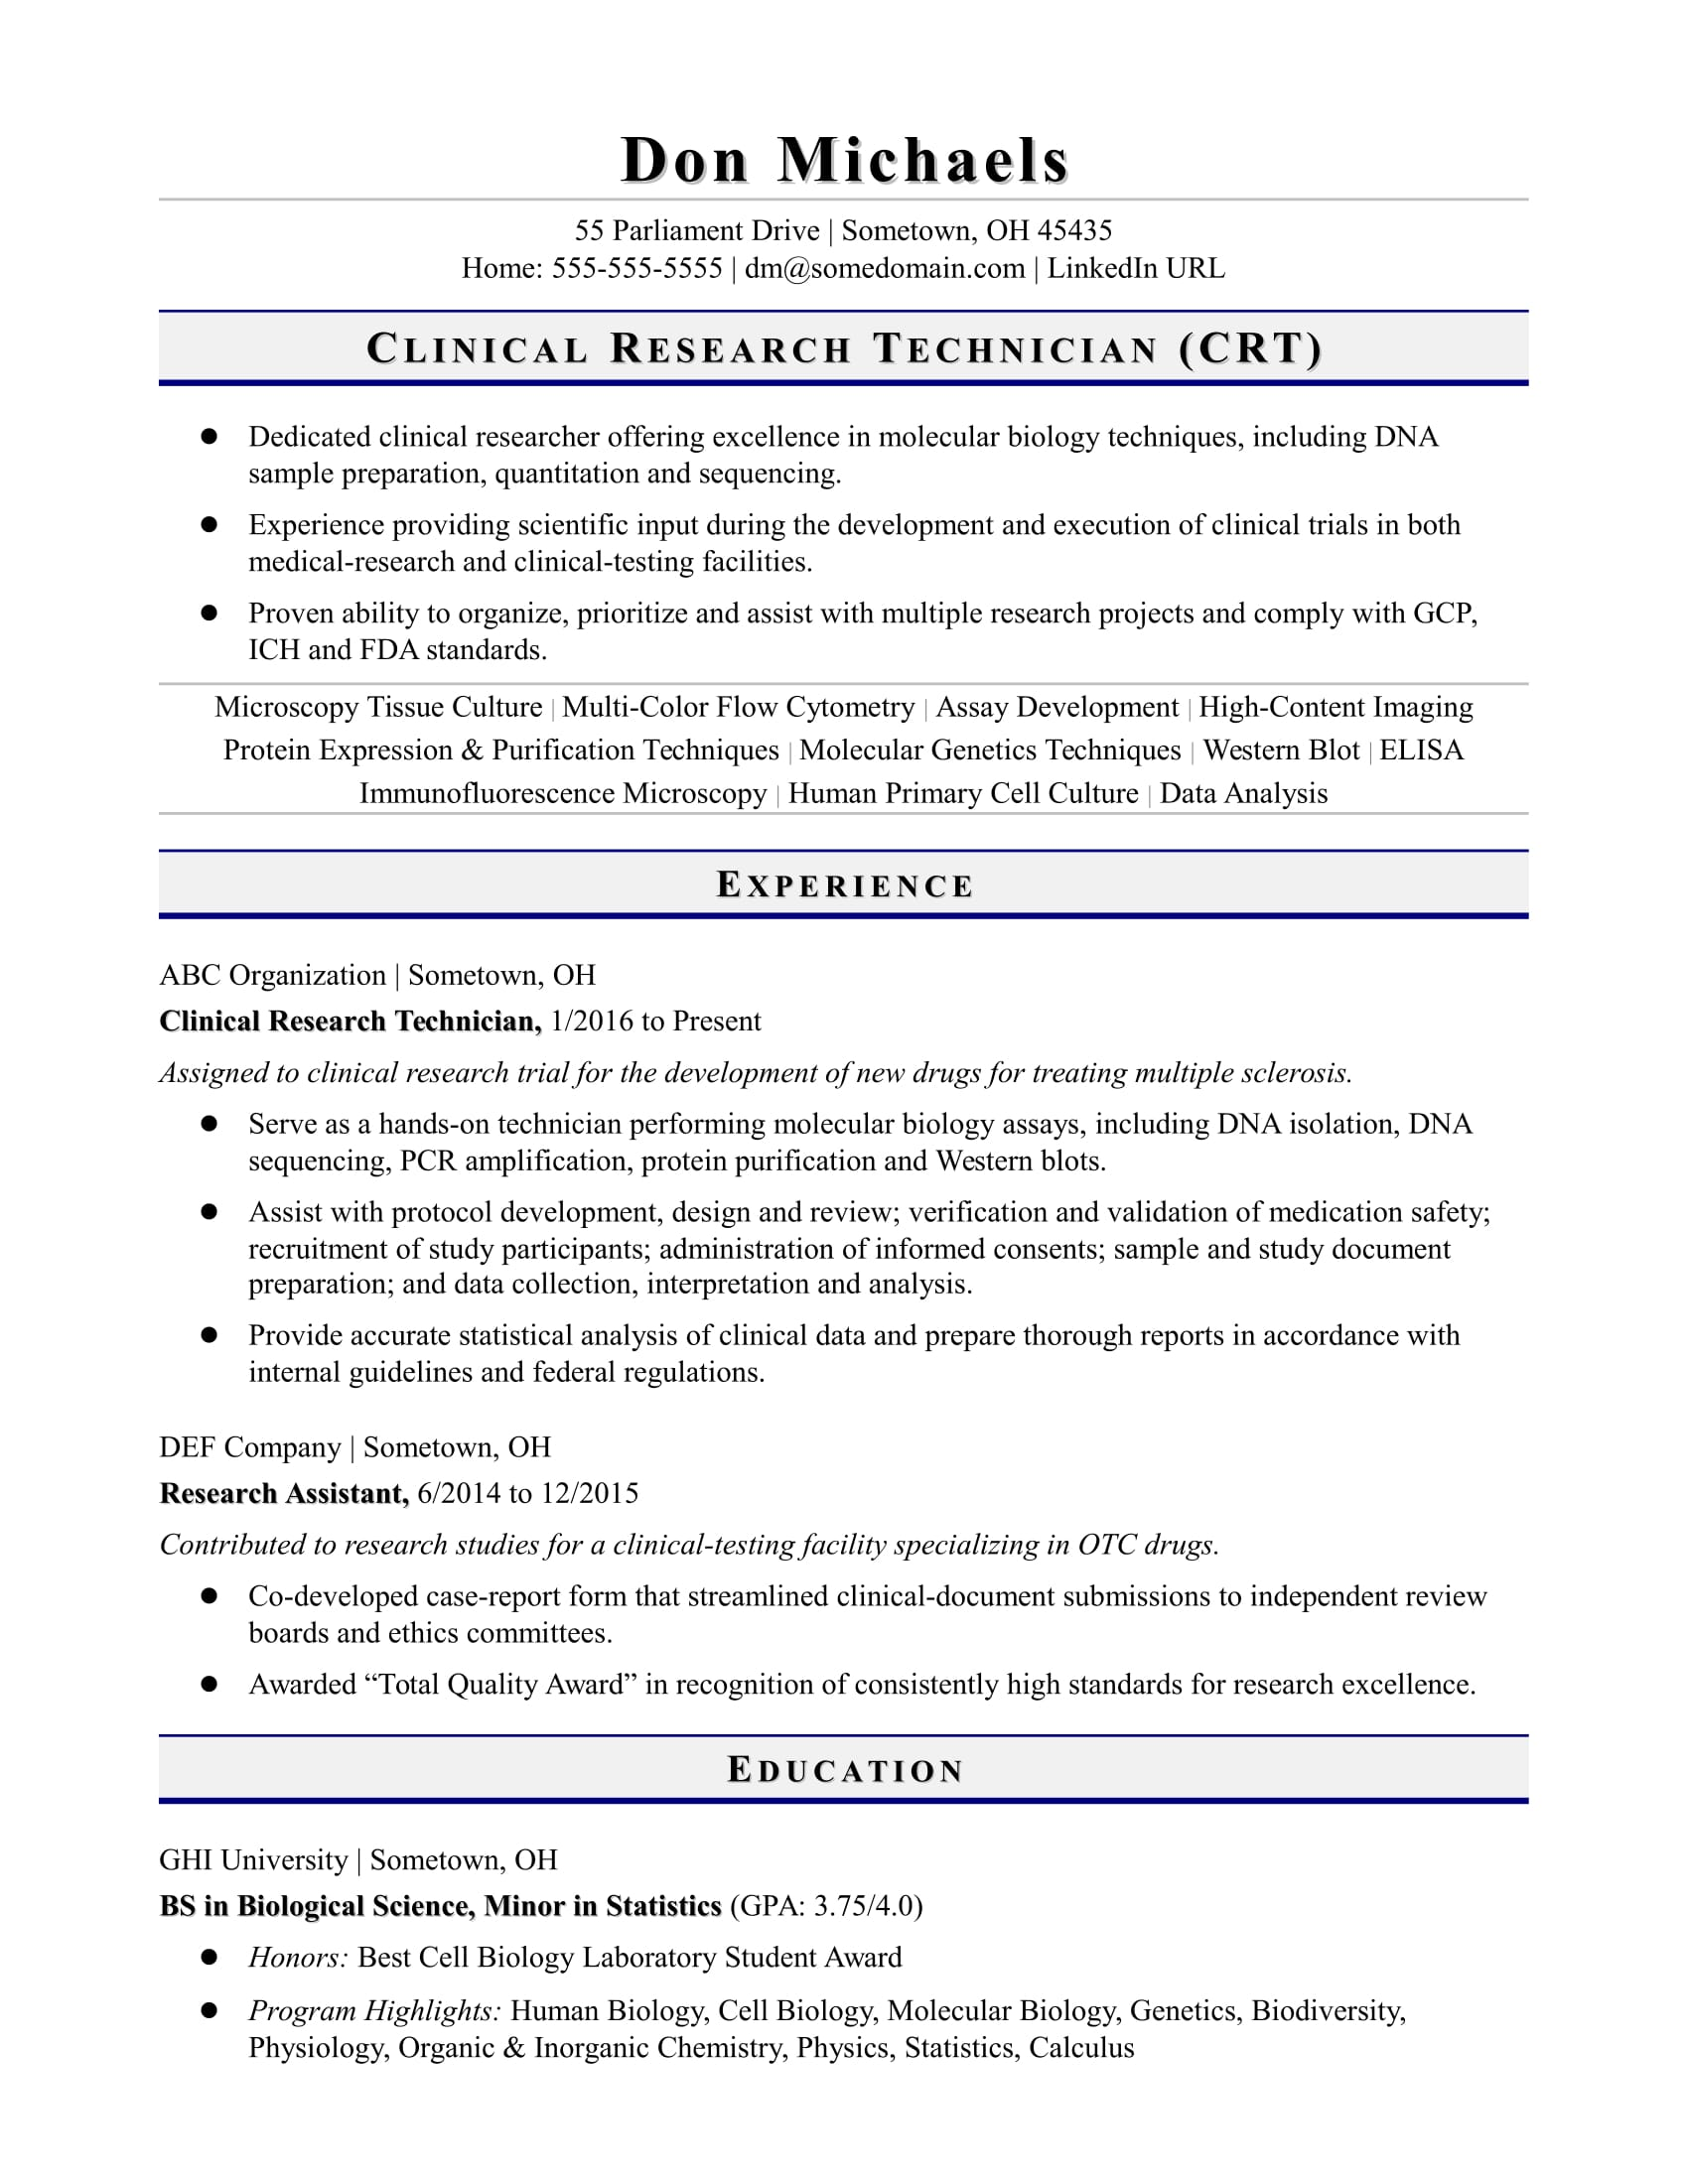 sample resume for an entry level research technician data center technician resume - Data Center Technician Resume